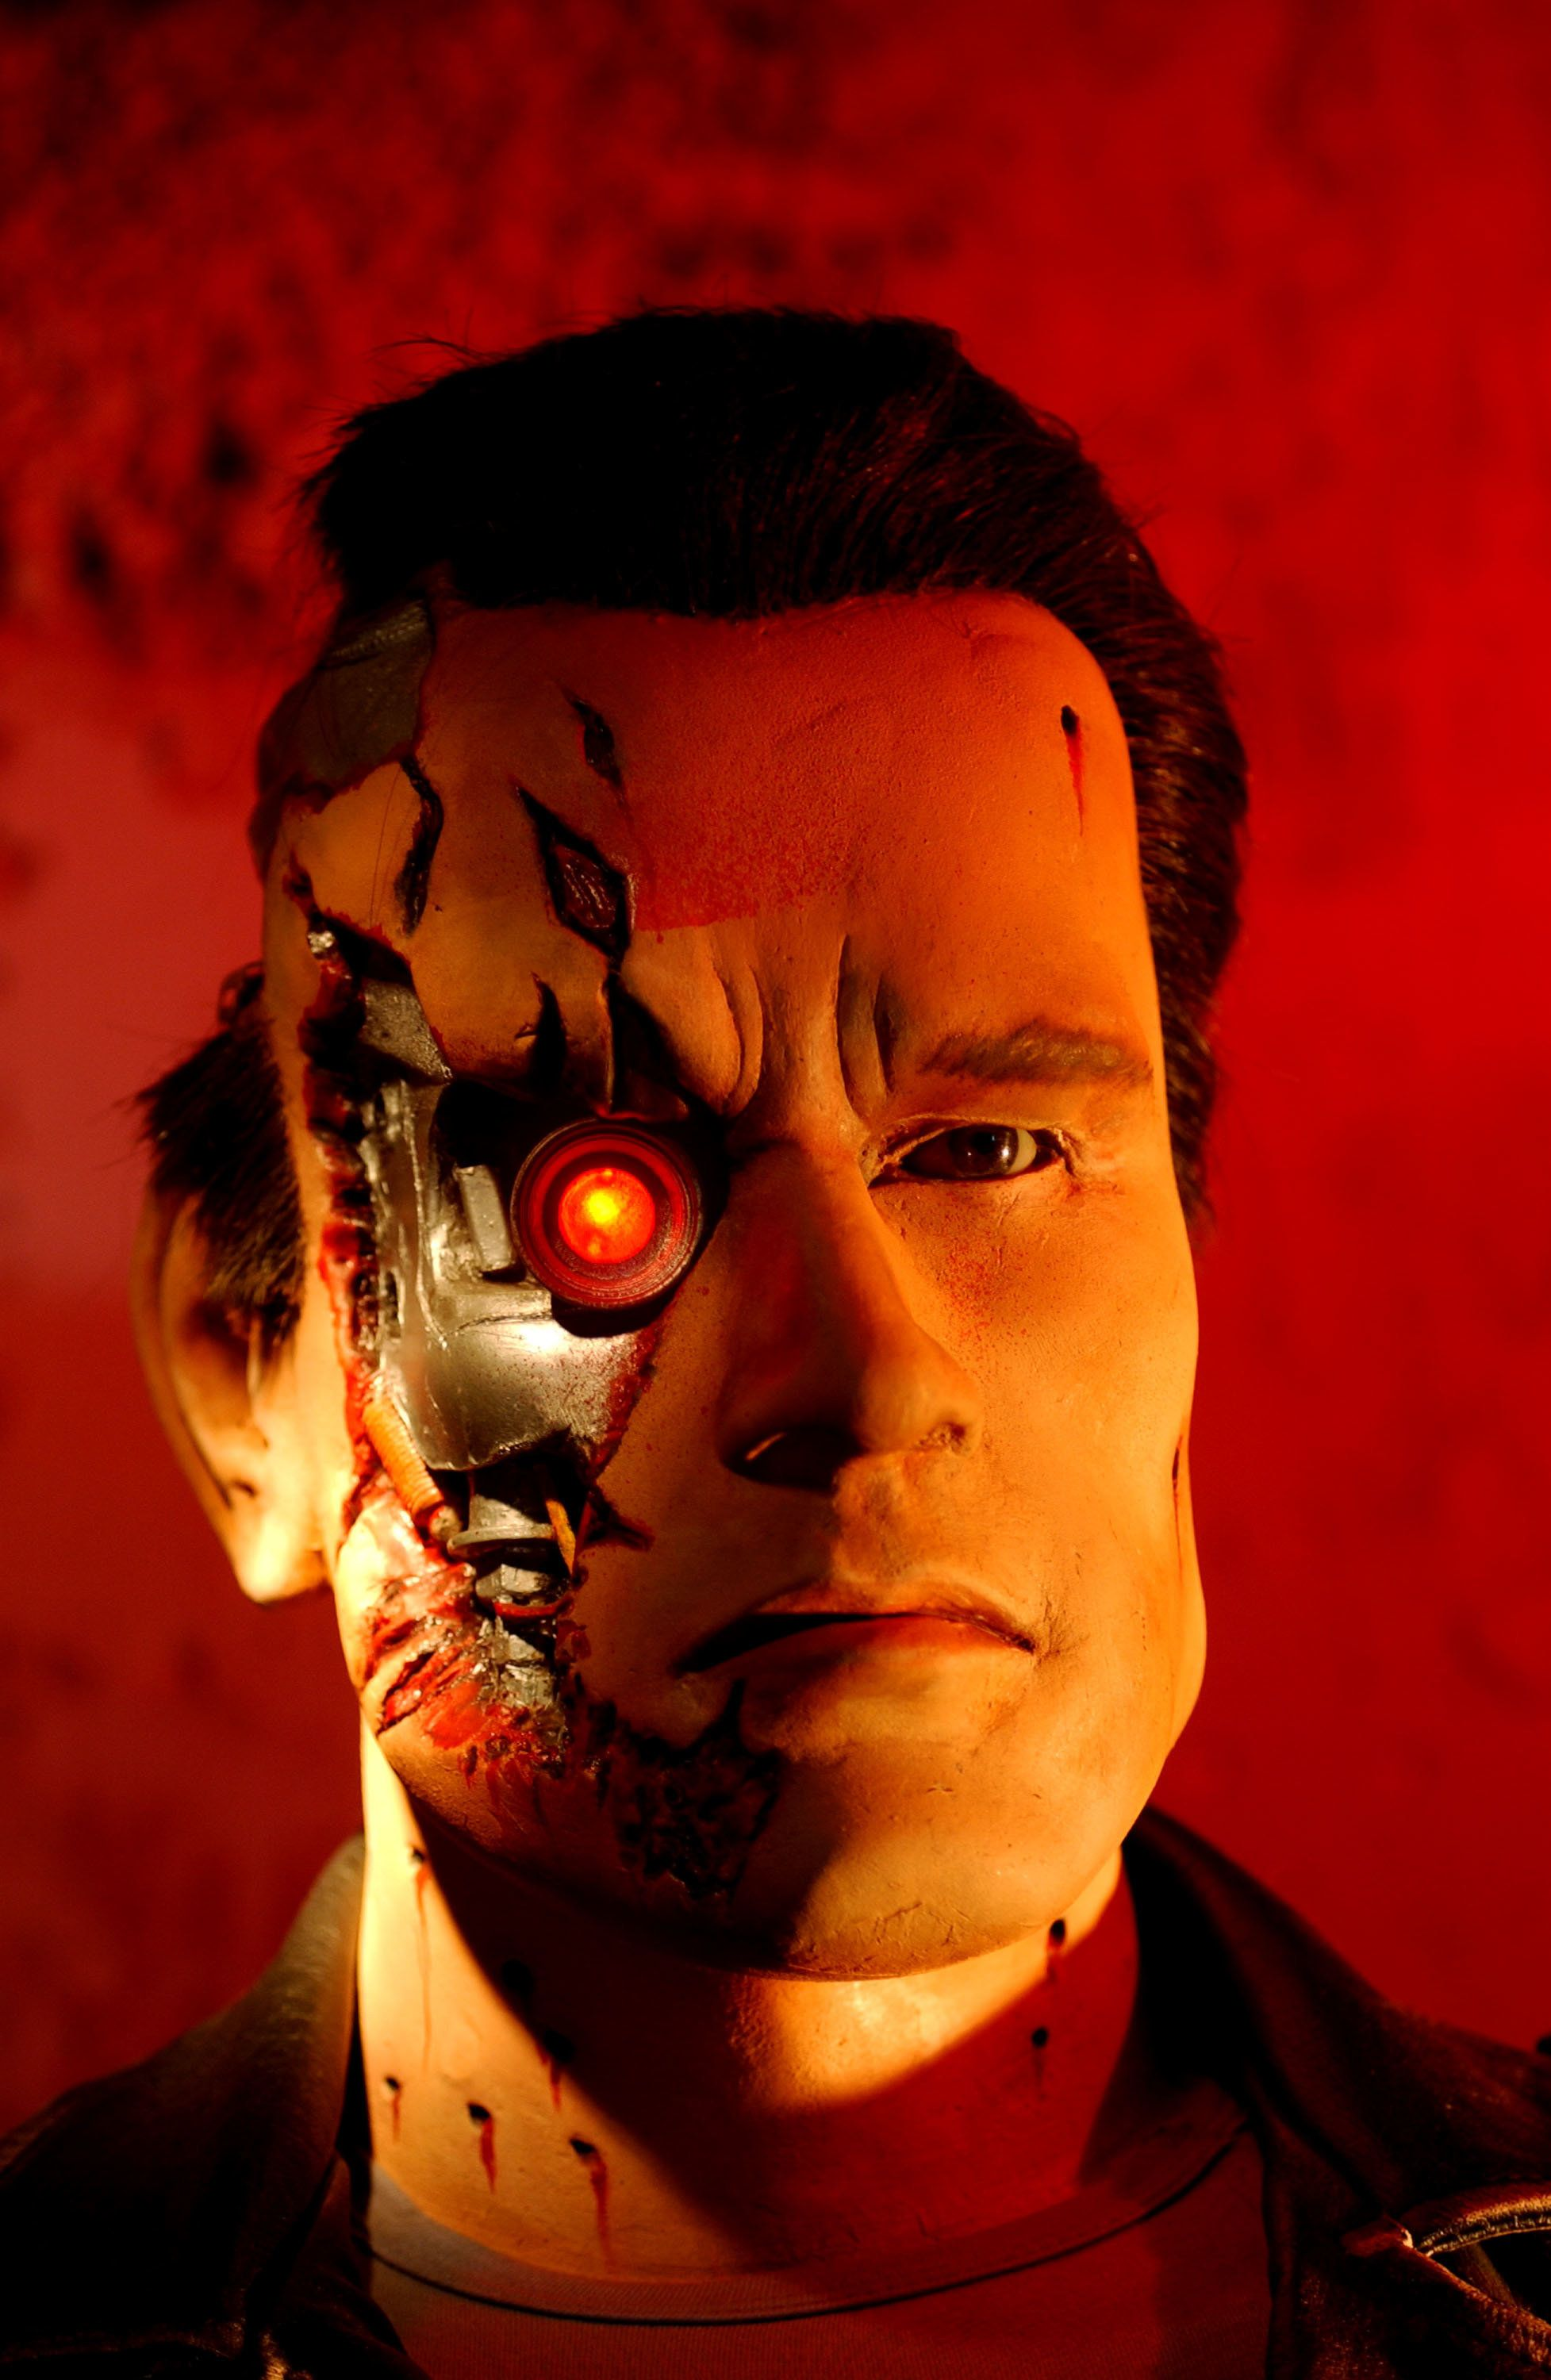 393812 04: A wax replica of actor Arnold Schwarzenegger in the film 'Terminator 2: Judgement Day is on display at the Hollywood Wax Museum August 28, 2001 in Hollywood, CA. The museum, started in 1965 to showcase Hollywood stars, has more than 180 wax figures. (Photo by David McNew/Getty Images)